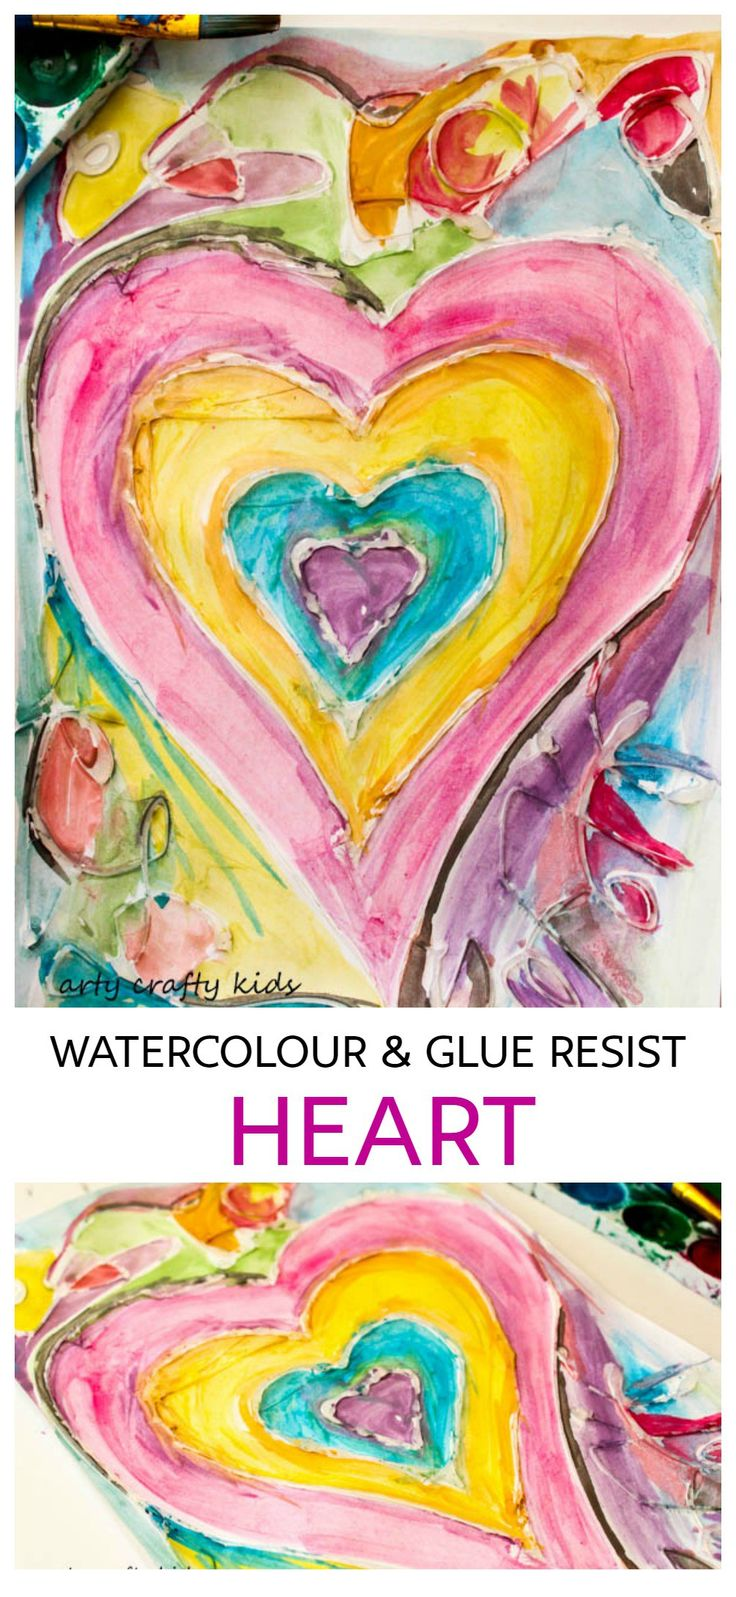 Arty Crafty Kids   Art   Watercolour and Glue Resist Heart Painting   Valentine's   Watercolour and Glue Heart Painting for Kids   A beautiful, unique and easy Heart art project for kids that's perfect for Valentine's Day.